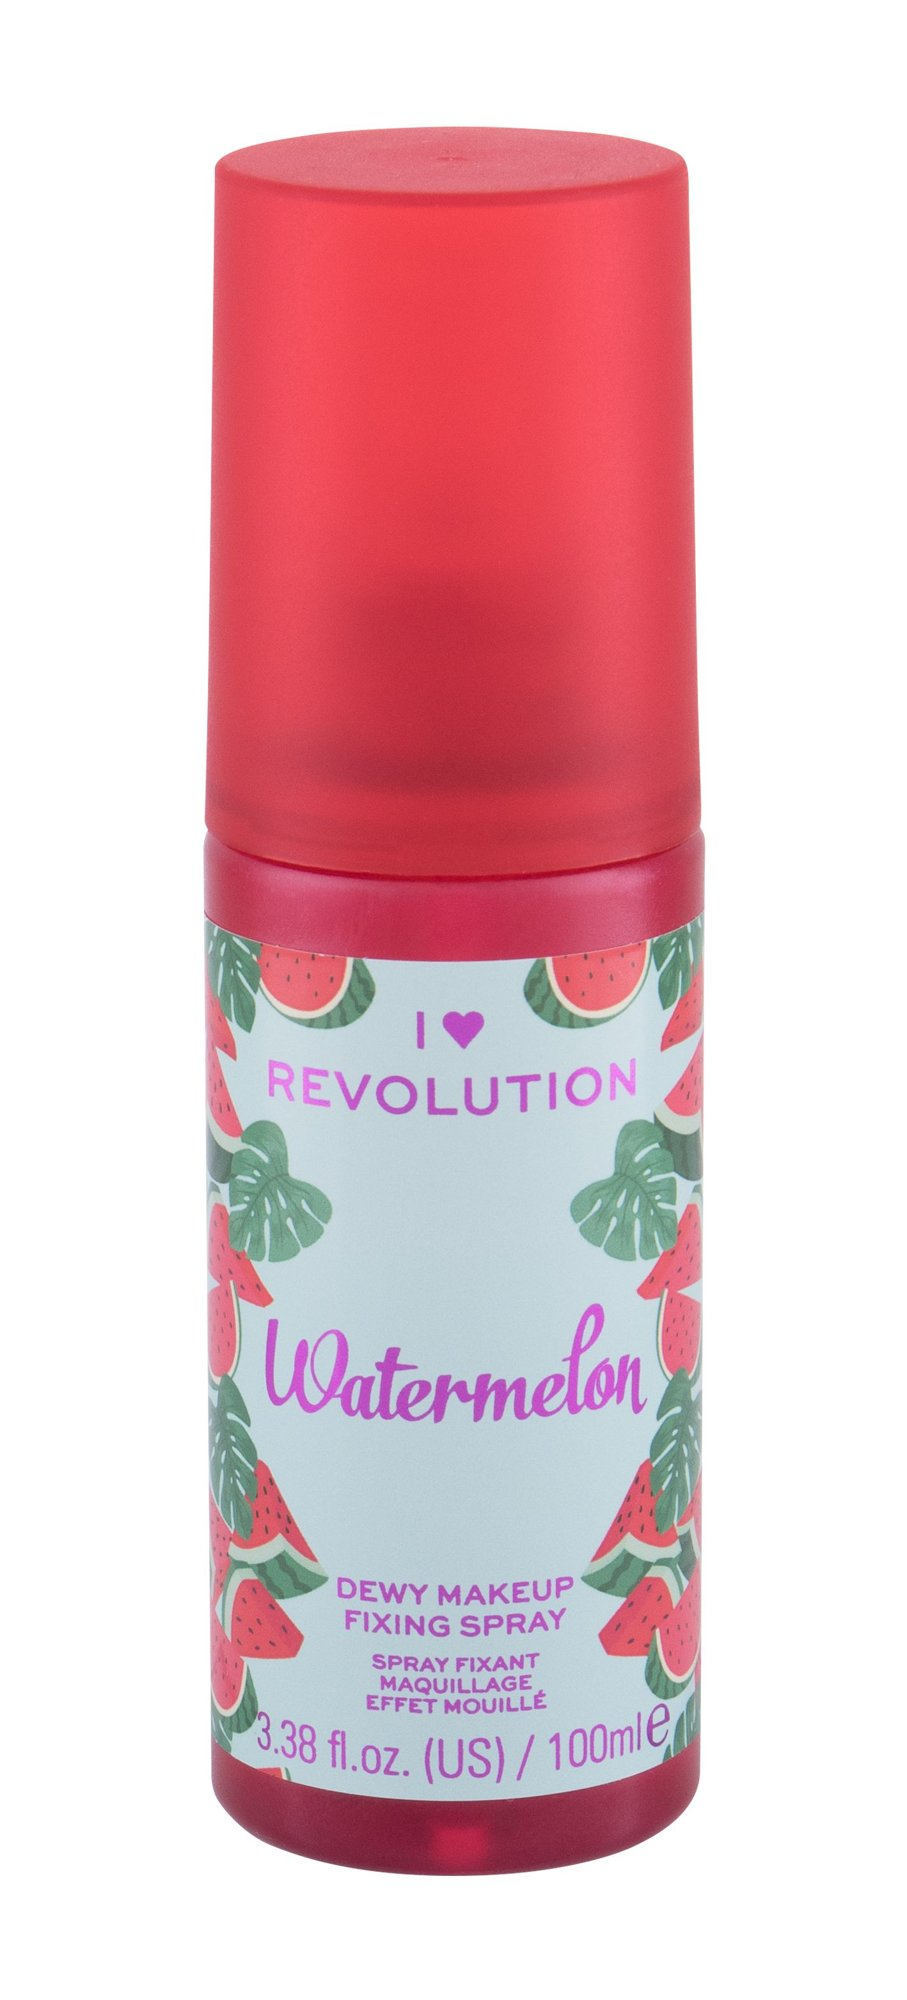 Makeup Revolution London I Heart Revolution Fixing Spray, Fixátor Alapozóu 100ml - Watermelon